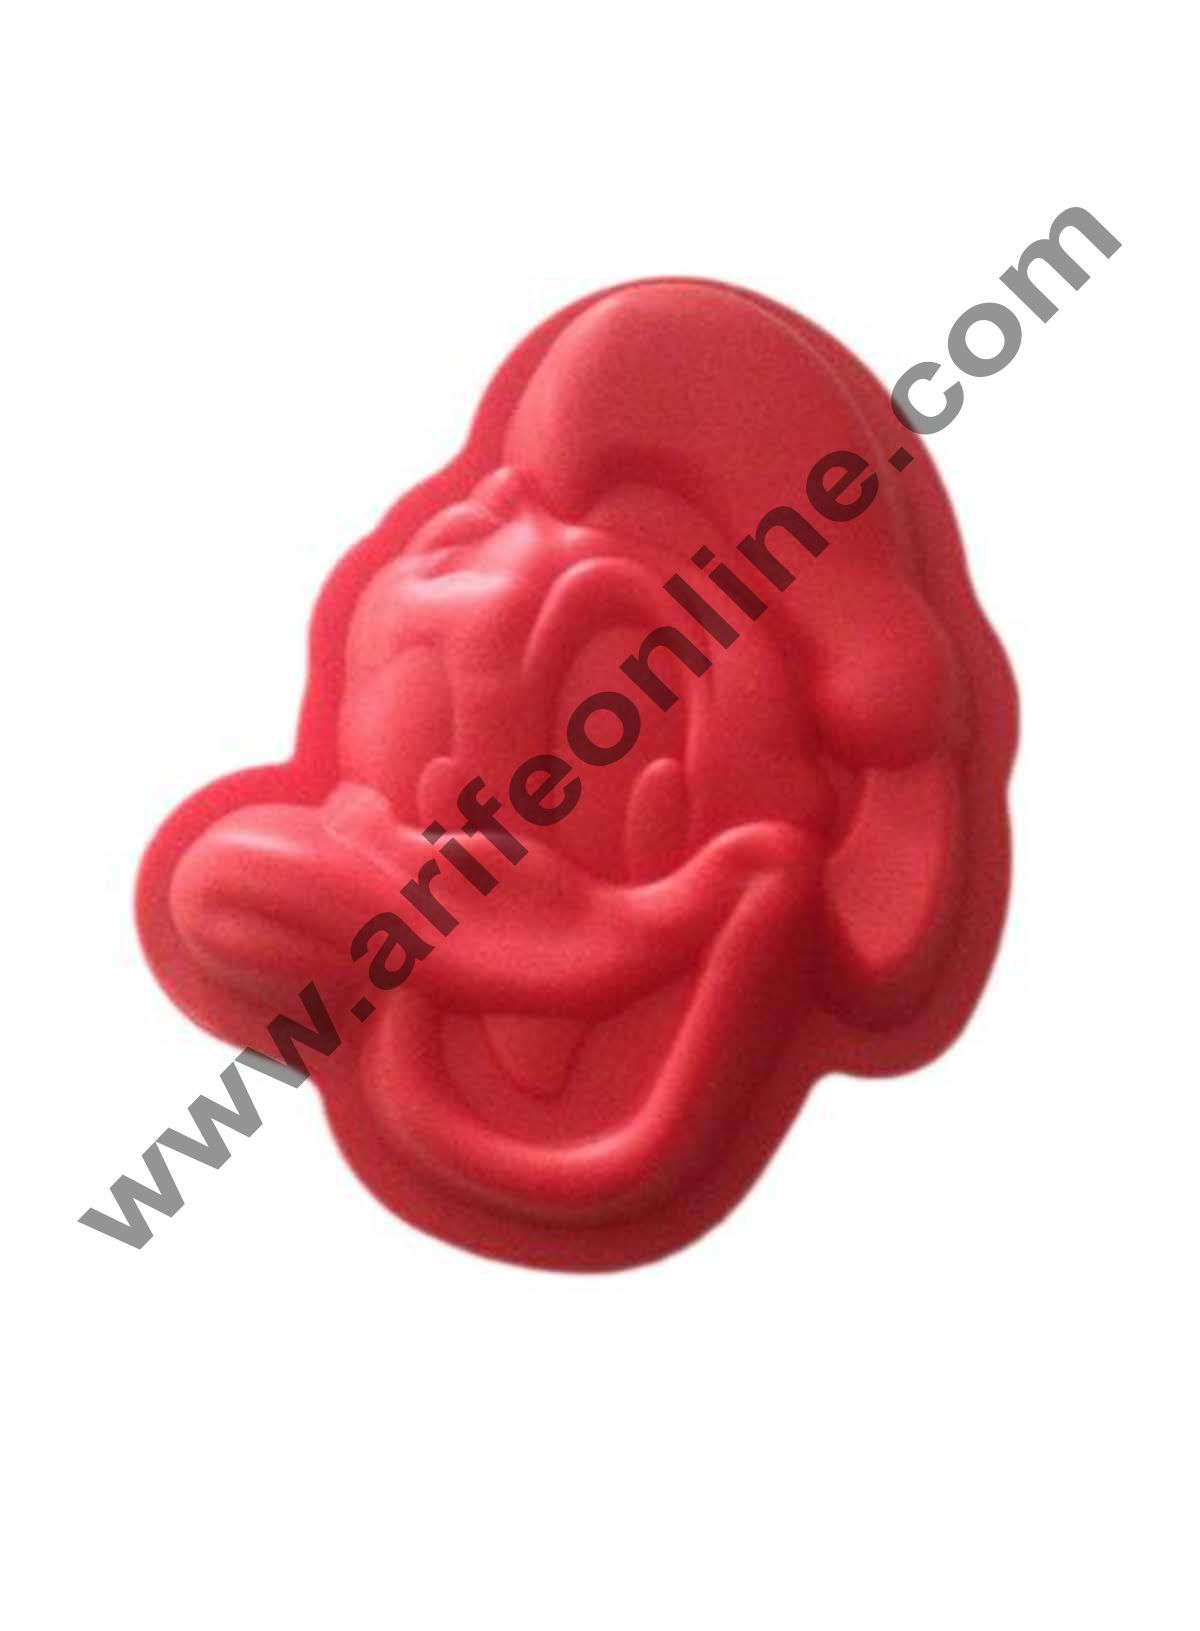 Cake Decor Silicon Bakeware Donald Shape Cake Mould